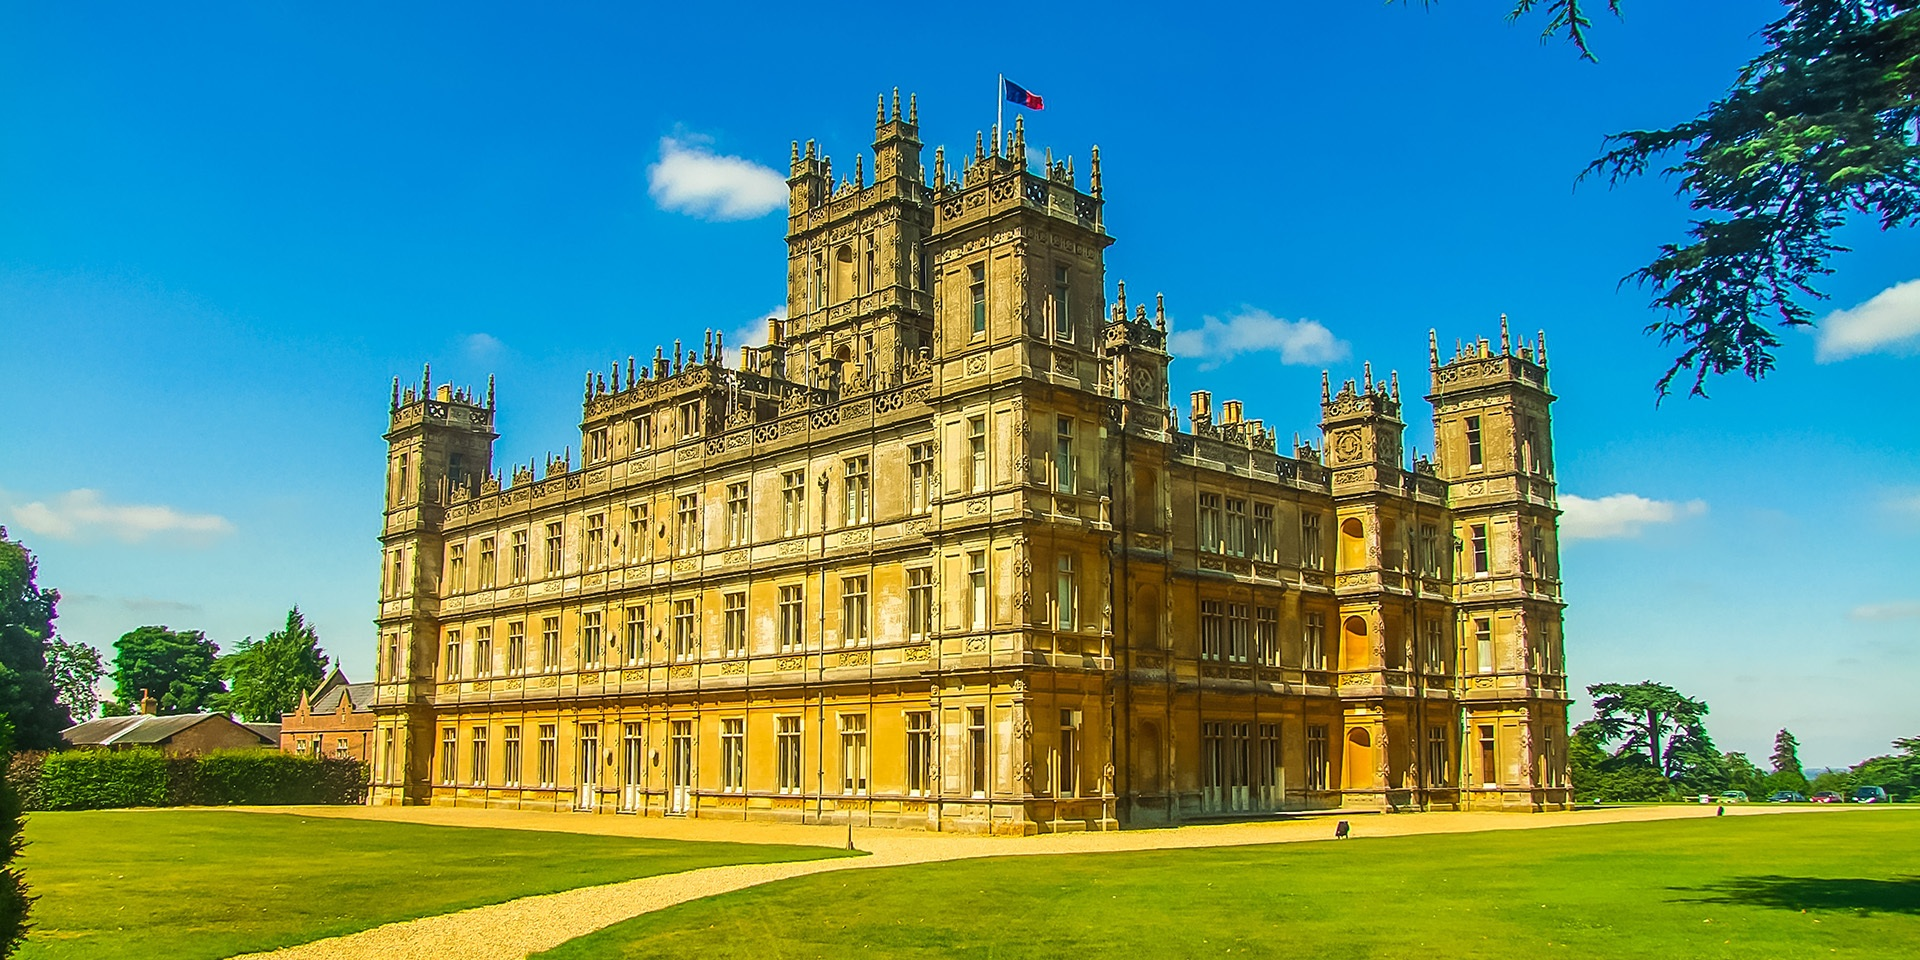 Downton Abbey castle cropped